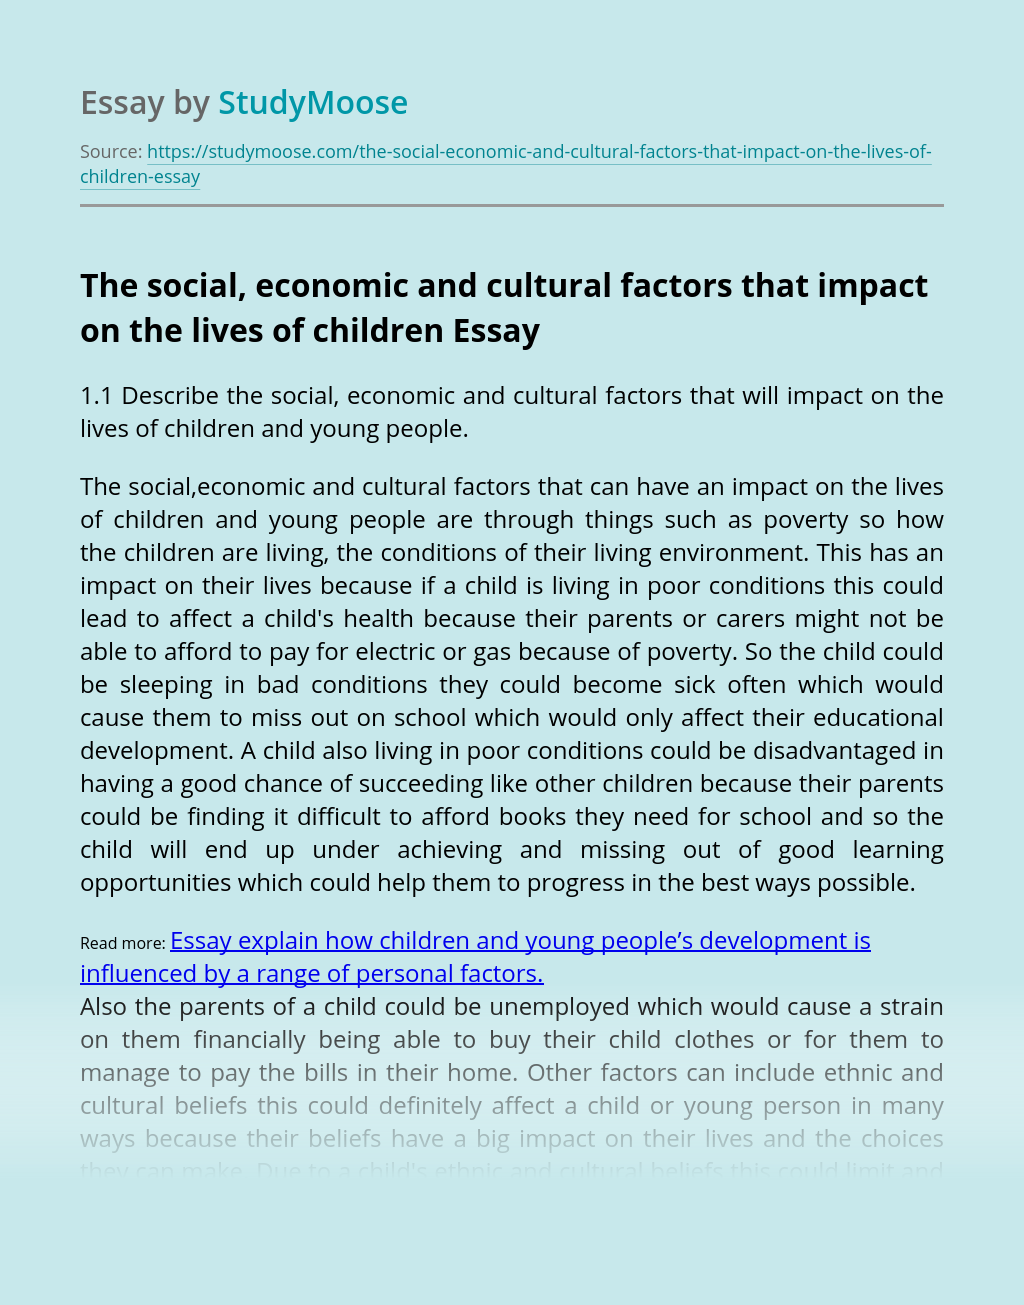 The social, economic and cultural factors that impact on the lives of children